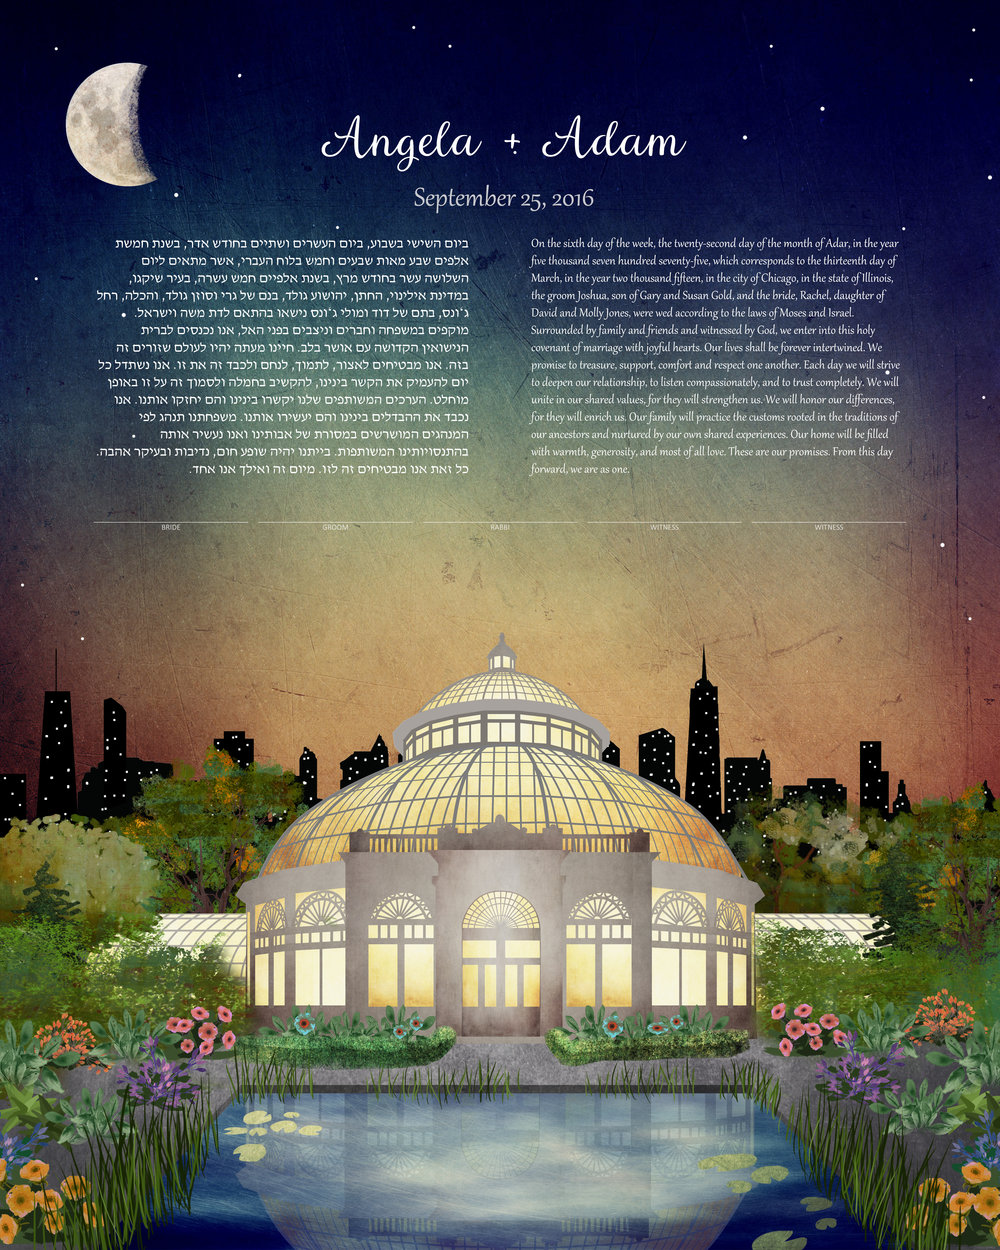 Vermont-based artists Adriana Saipe designed this ketubah for a couple whose wedding was held at the New York Botanical Garden. Credit: Courtesy of Adriana Saipe/inkwithintent.com.